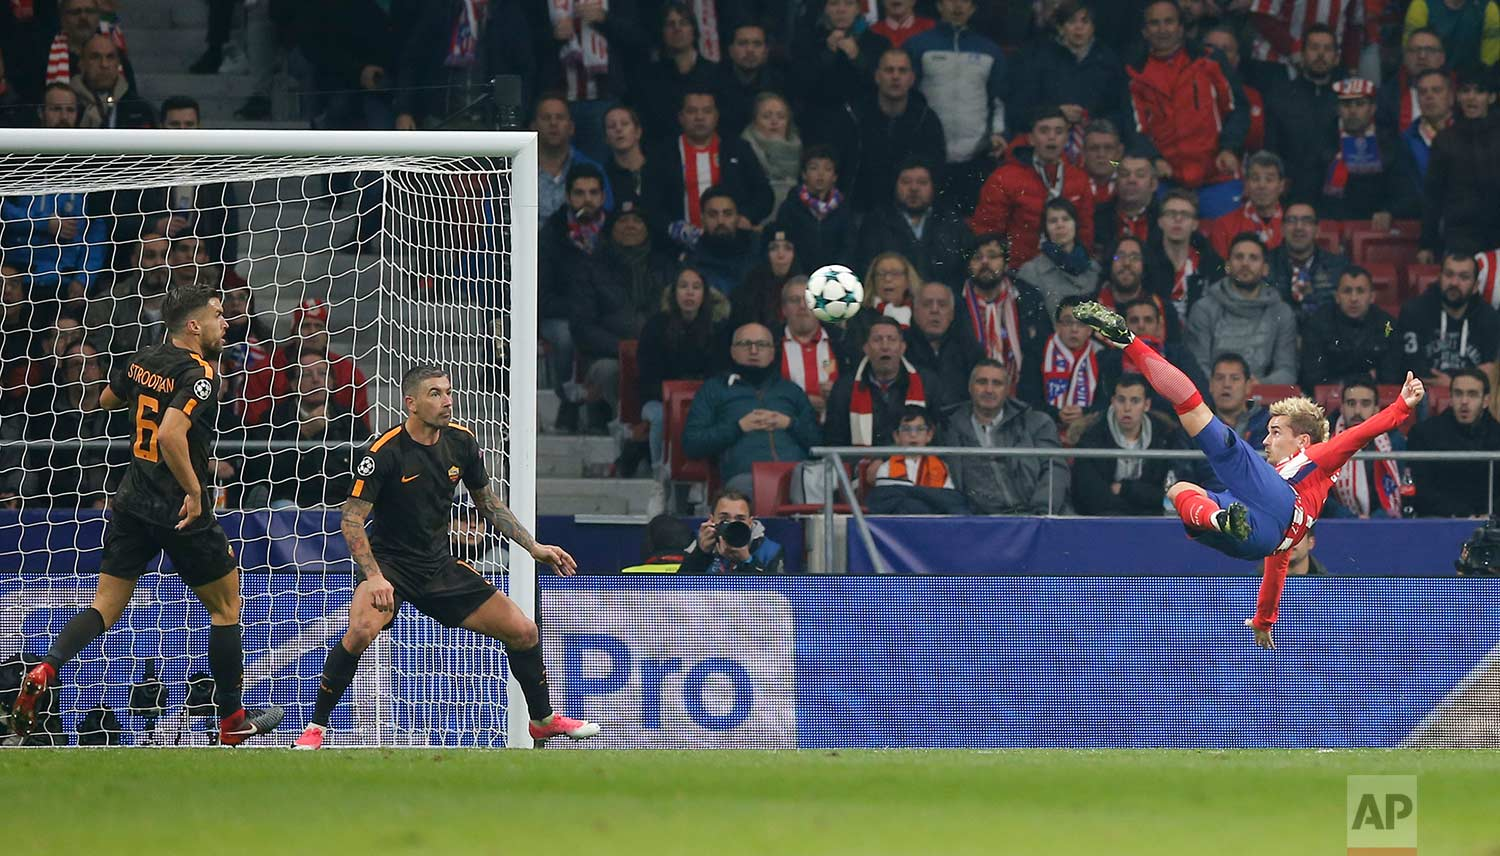 Atletico's Antoine Griezmann shoots to score his side's opening goal during a Champions League group C soccer match between Atletico Madrid and Roma at the Wanda Metropolitano stadium in Madrid, Wednesday, Nov. 22, 2017. (AP Photo/Paul White)